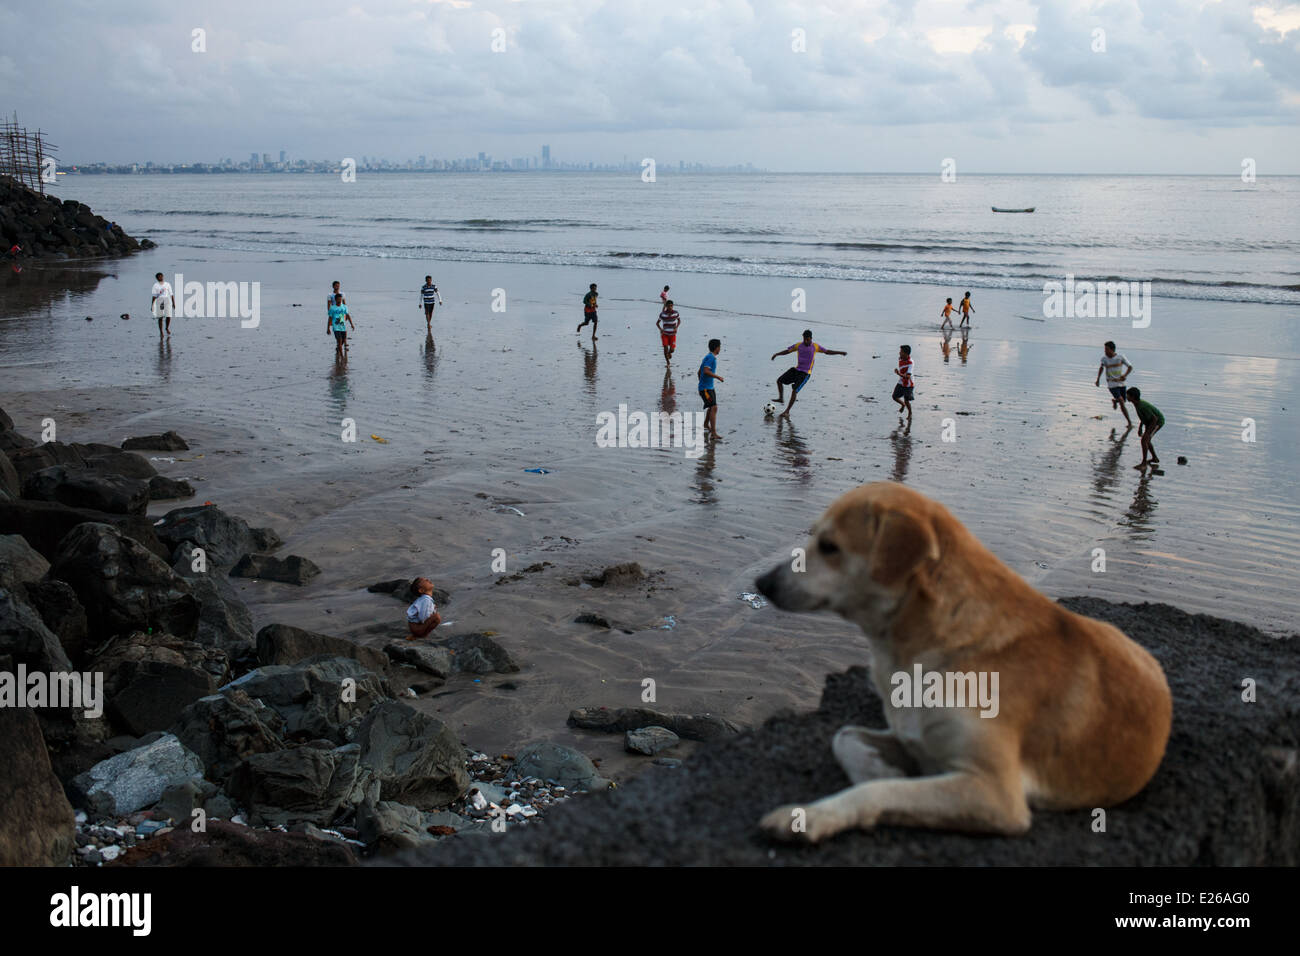 Football match on the beach and a dog in Versova, Mumbai, India - Stock Image